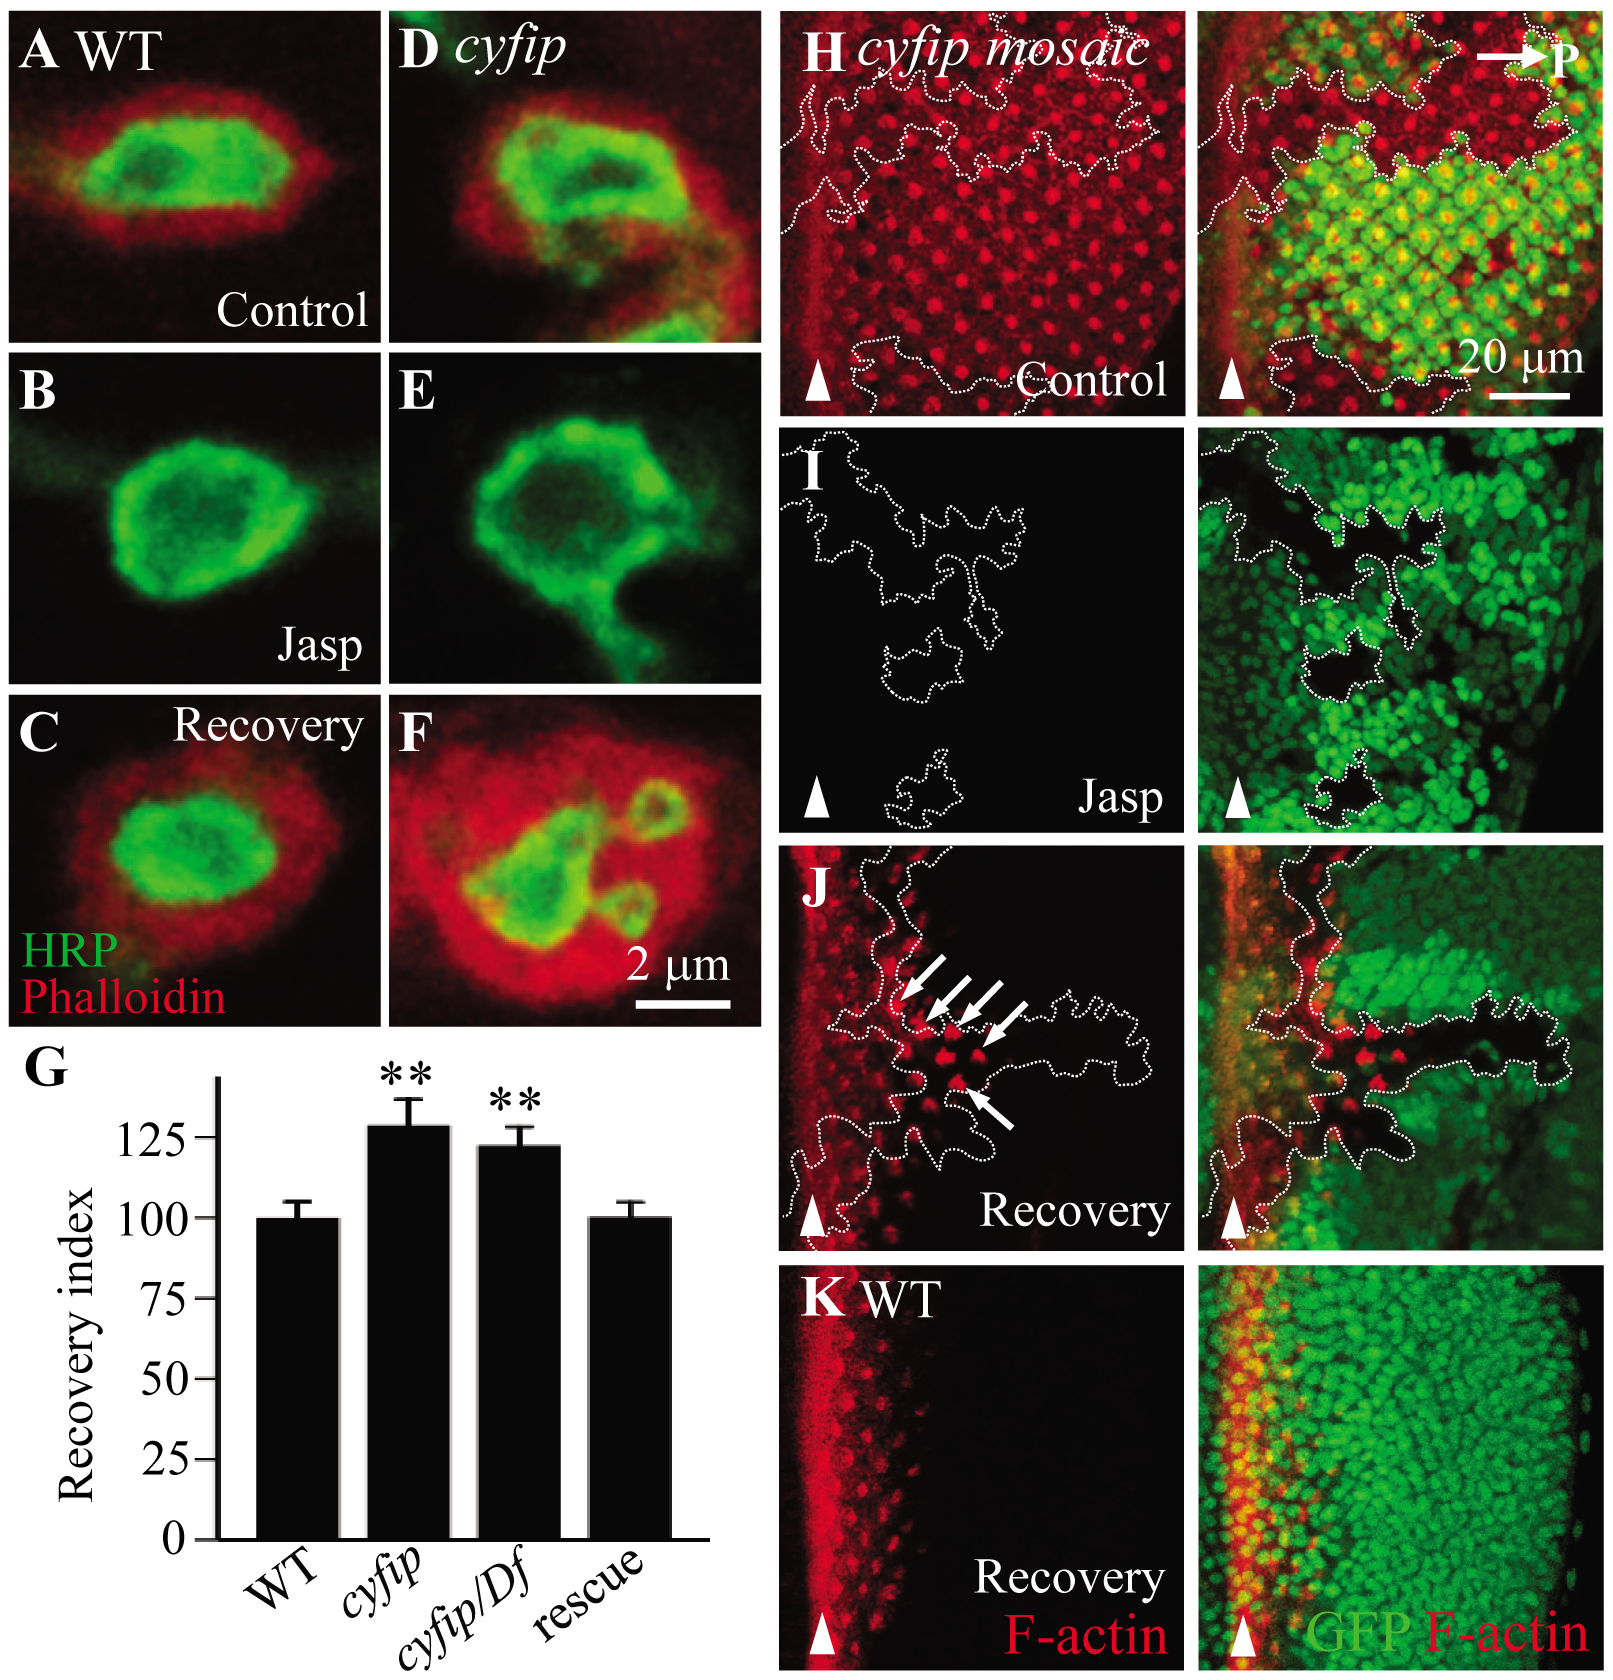 New F-actin assembly is enhanced in <i>cyfip</i> mutants.